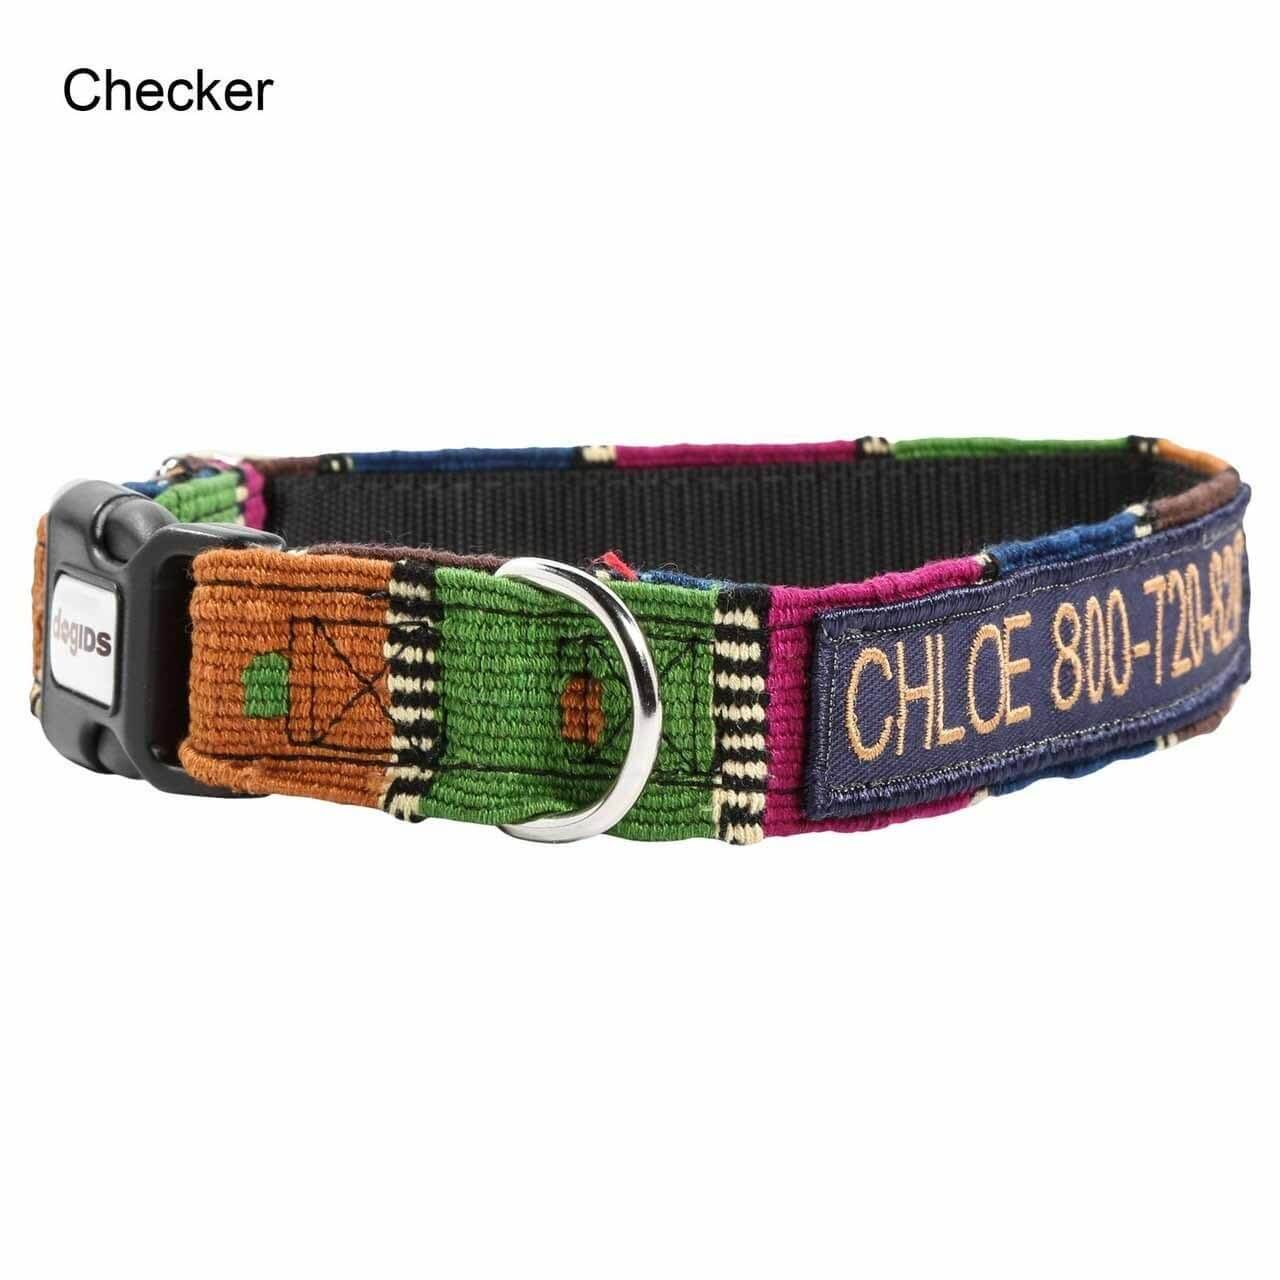 Embroidered Maya Personalized Dog Collar Checker